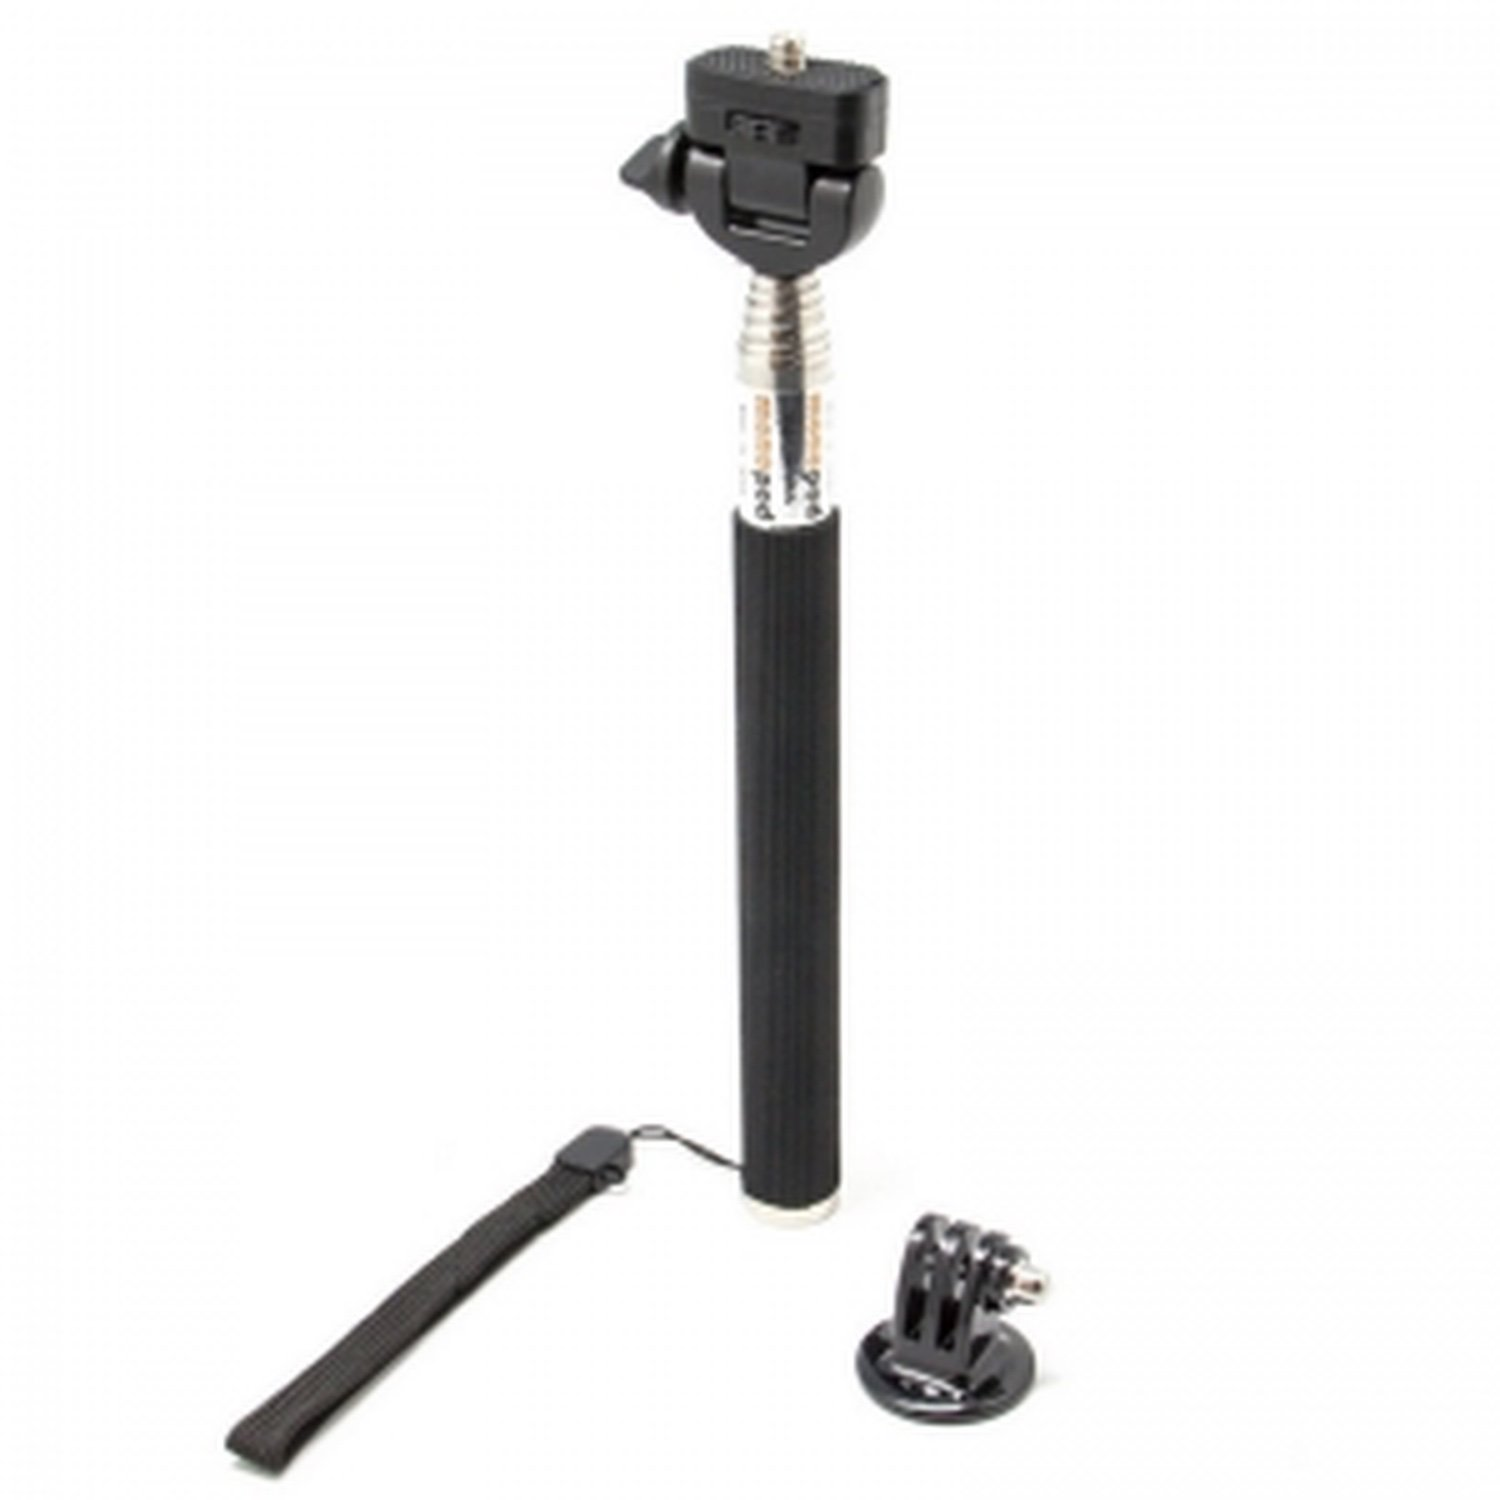 Extendable Telescopic Handheld Pole Arm Monopod Black with Tripod Adapter for Gopro HD Hero 4/3/2/ 1 m20 bike handlebar seatpost pole mount holder for gopro hero 2 3 3 4 black